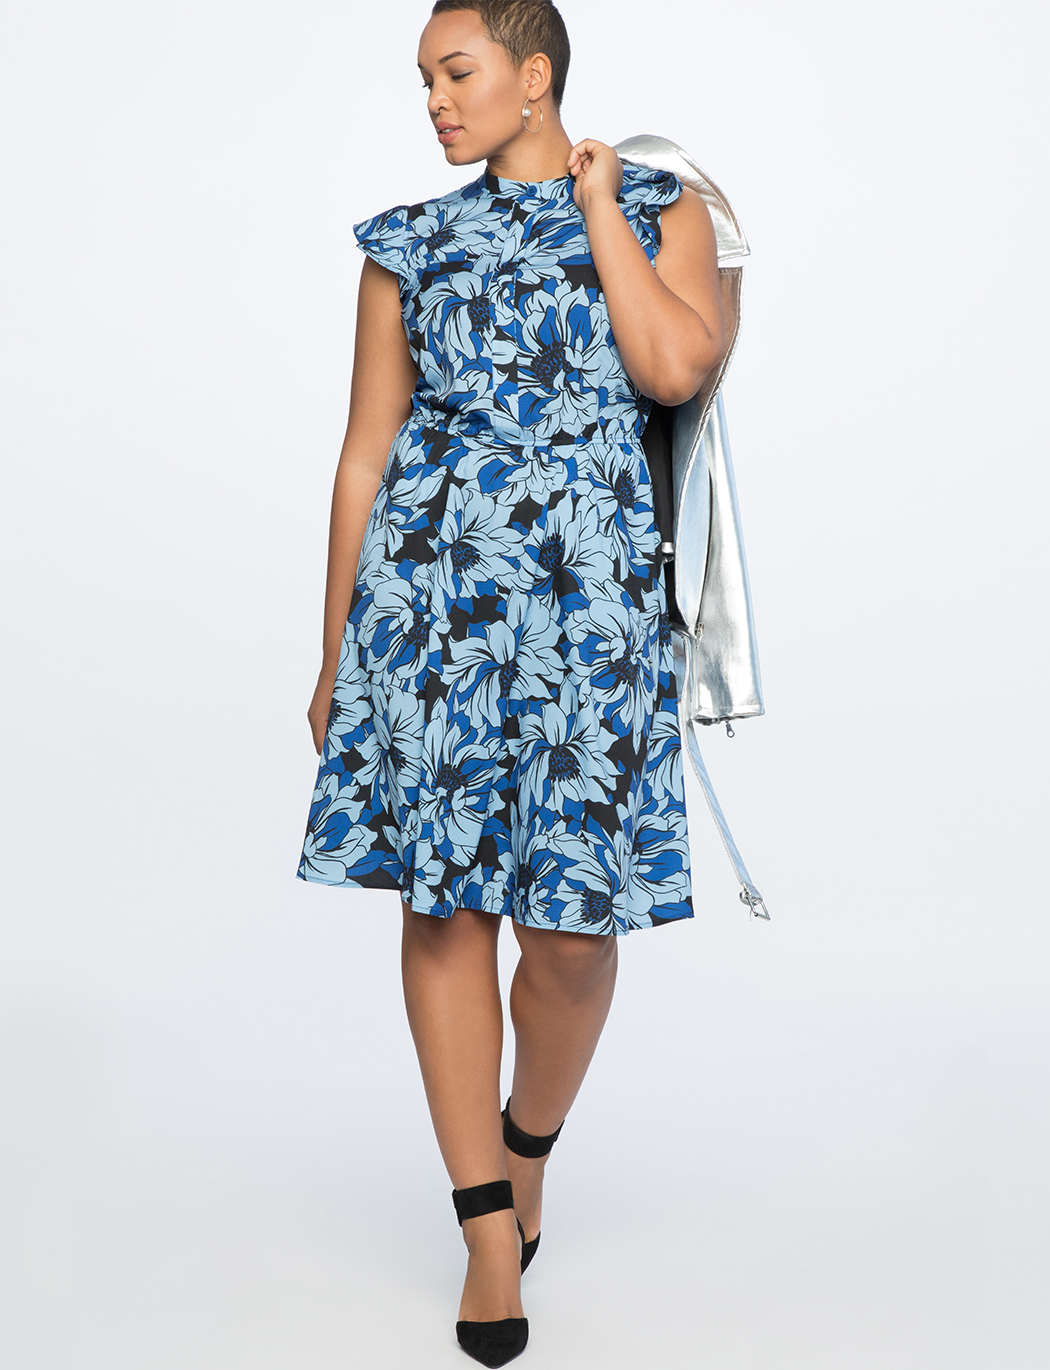 Shirtdress with Ruffles